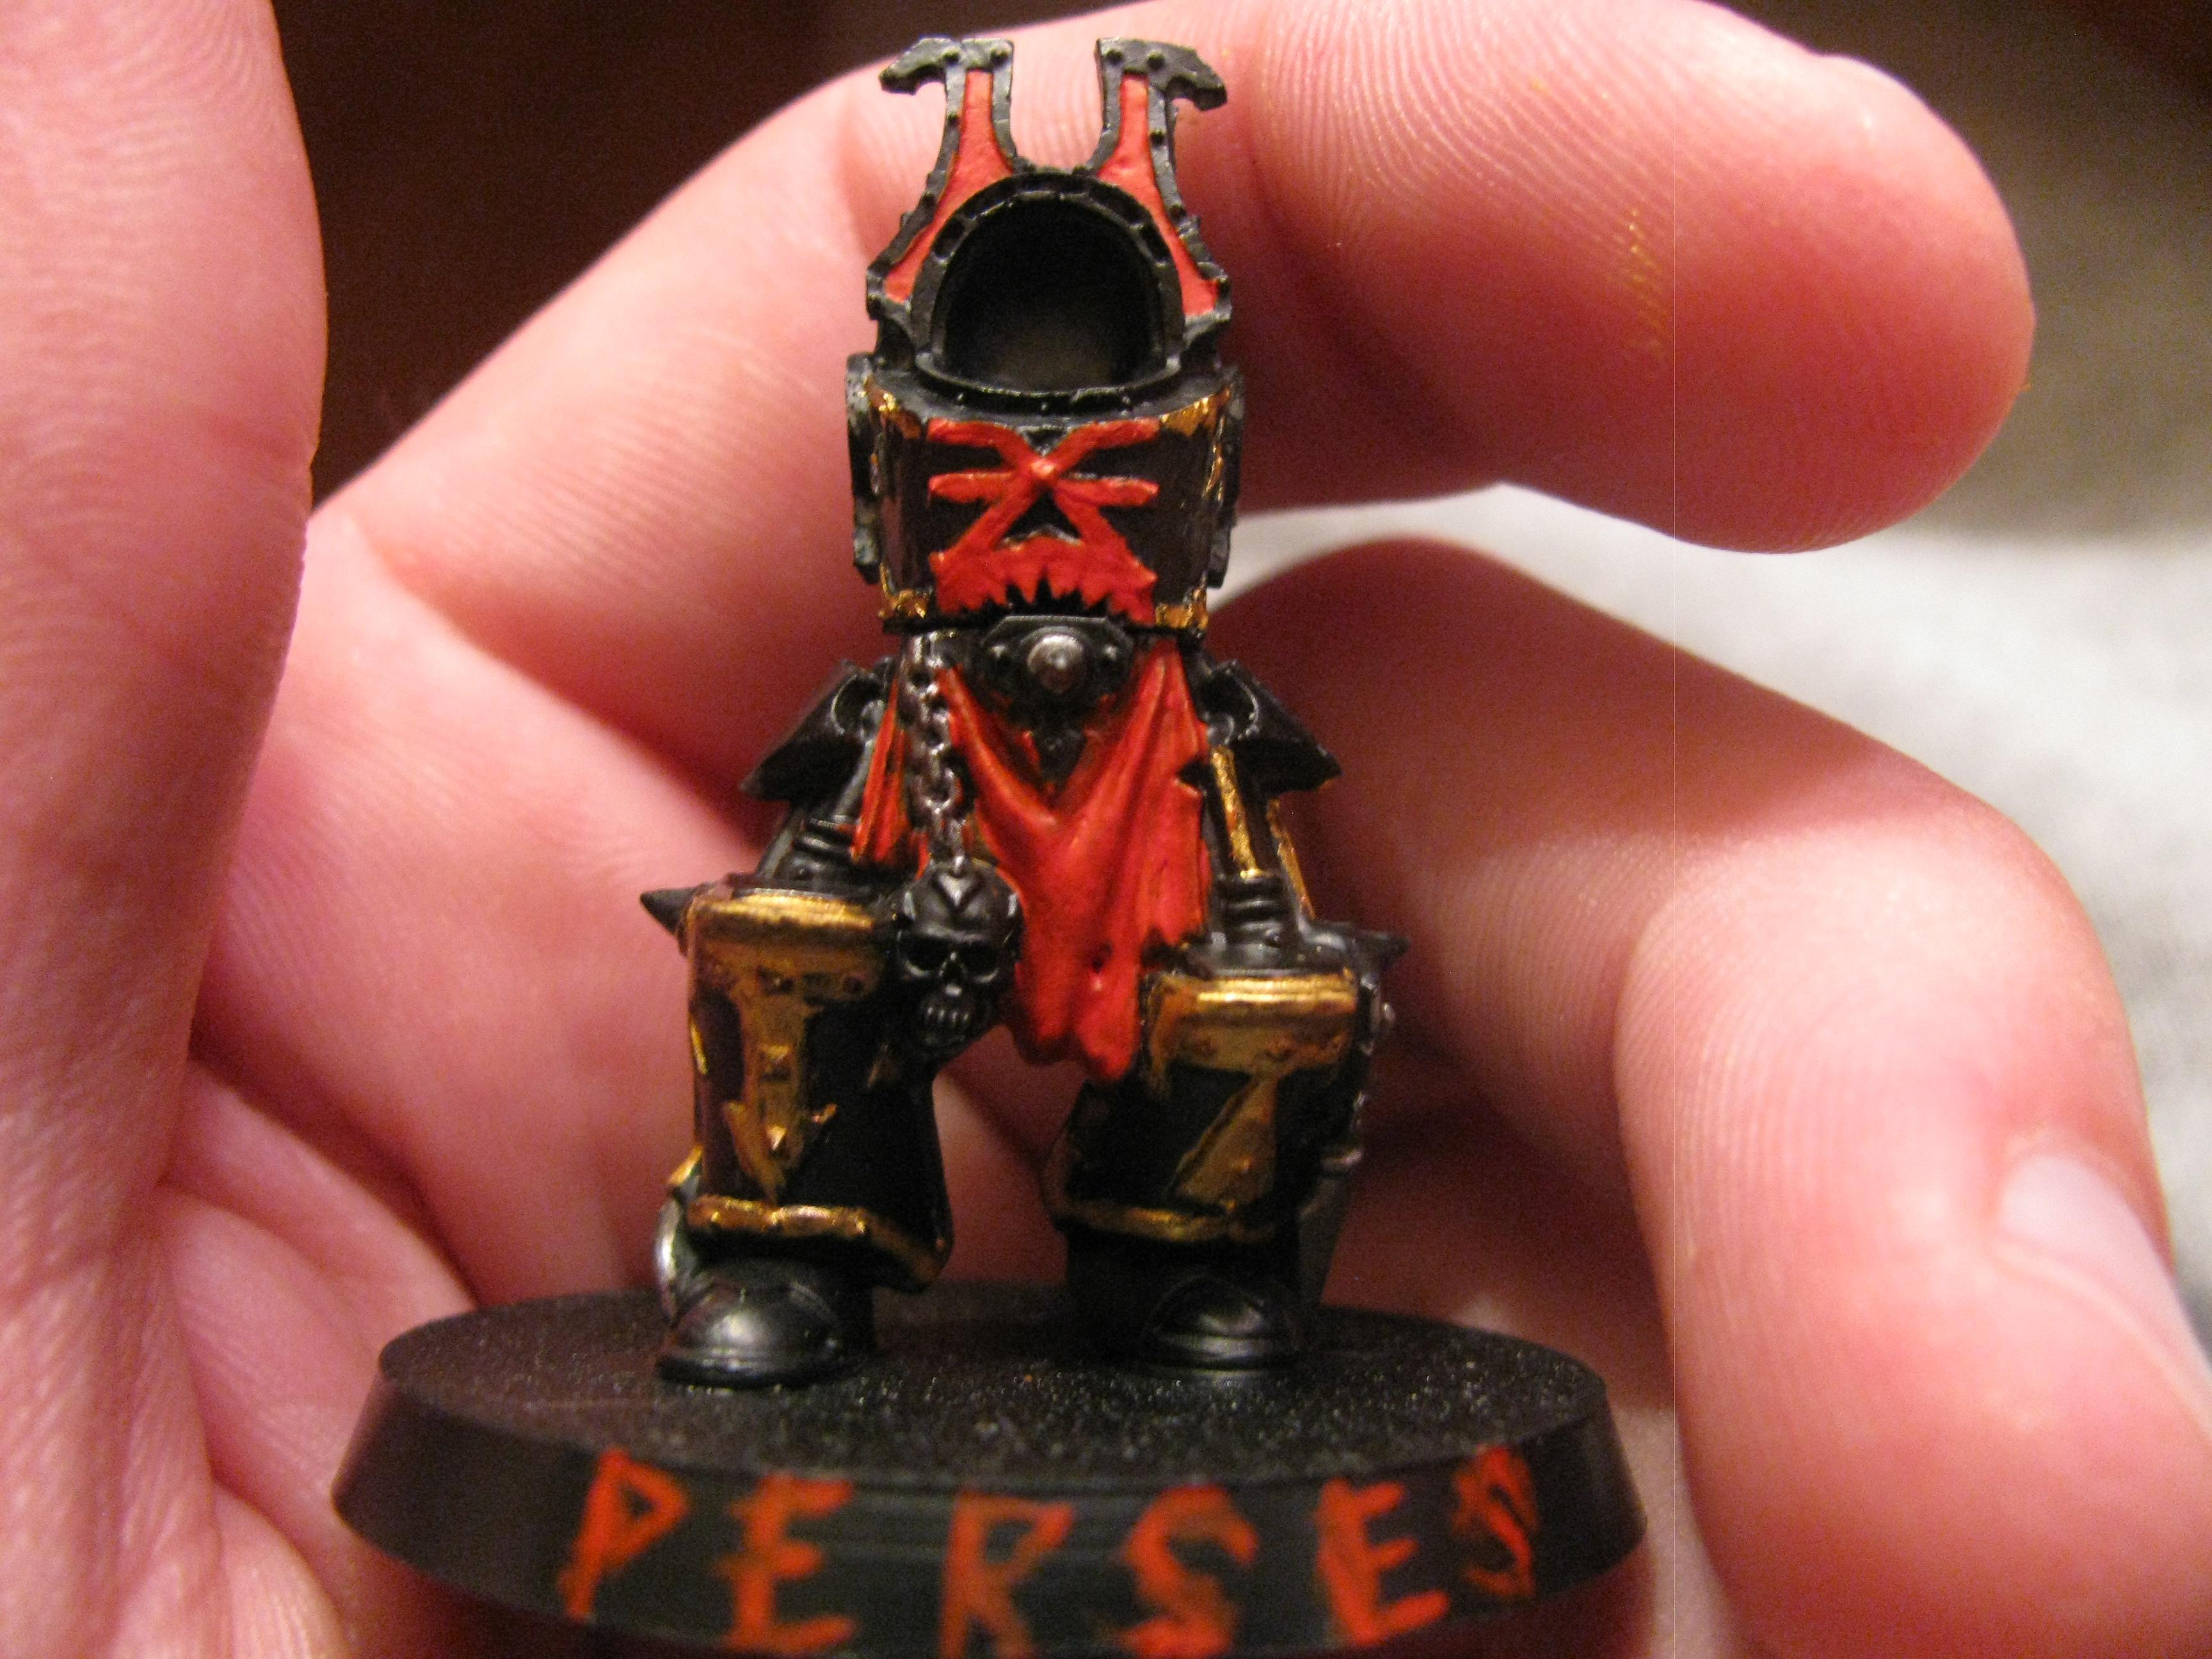 Perses, Havoc champion, he gets the reaper autocannon